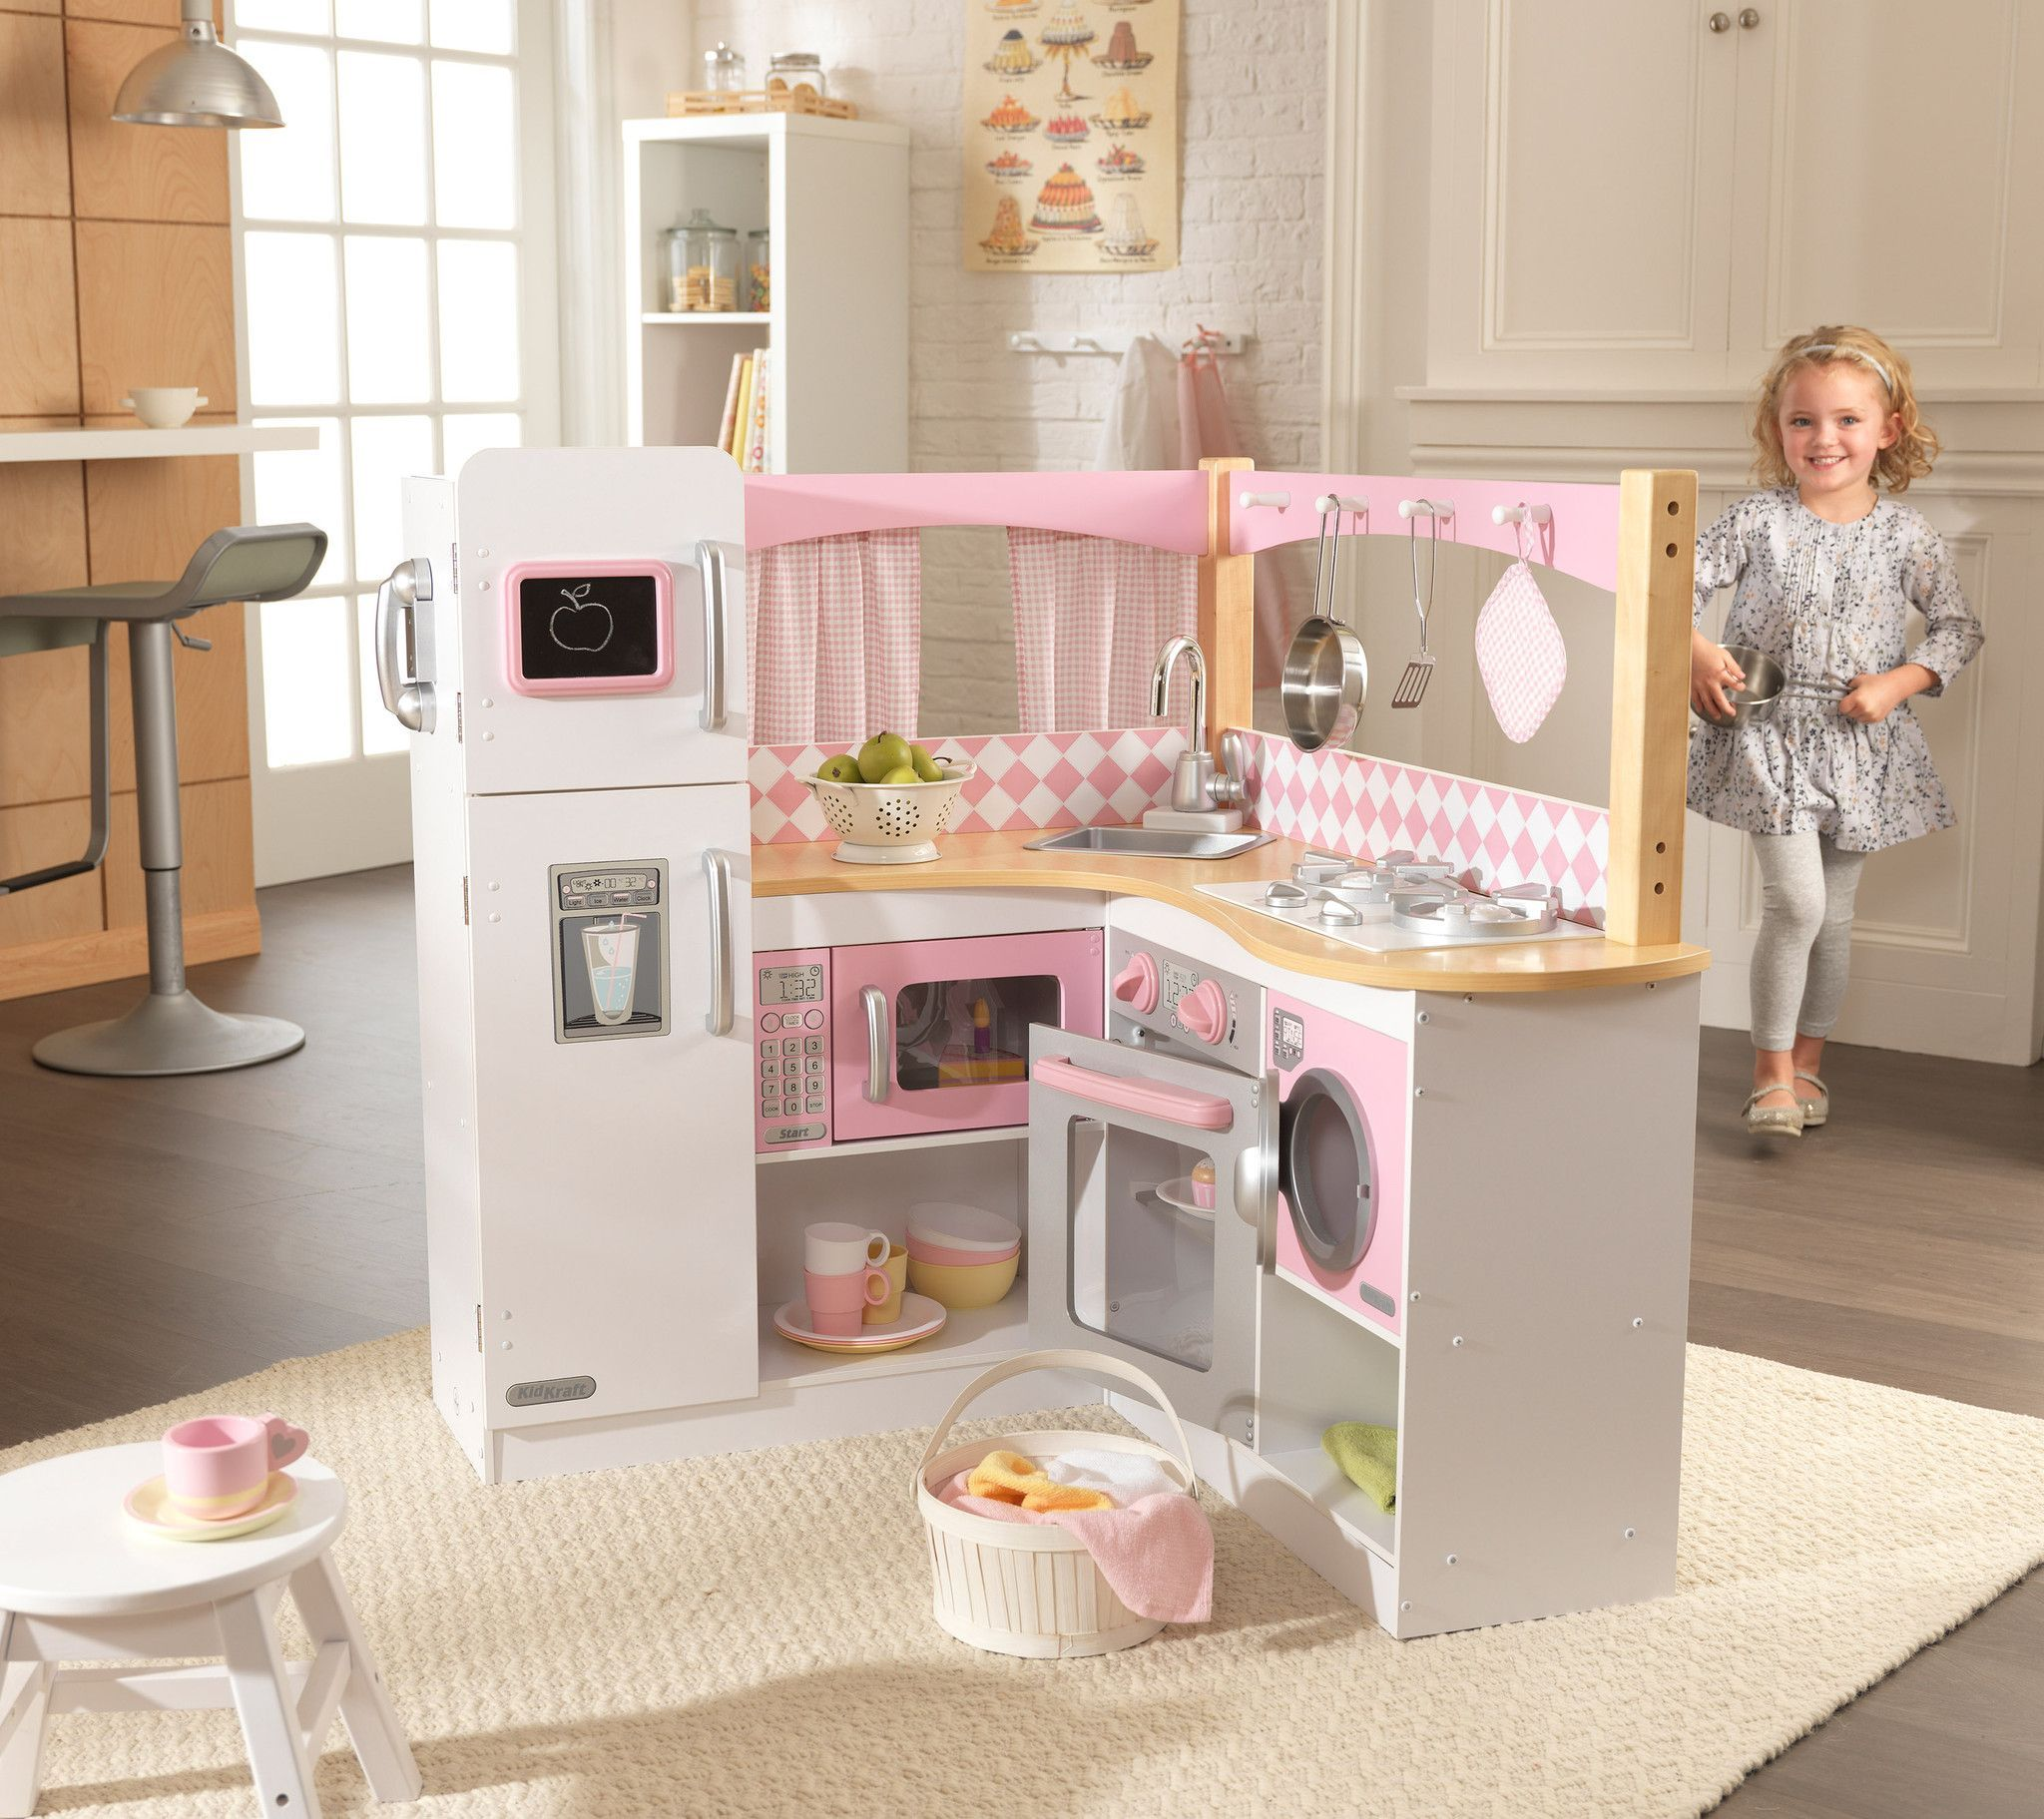 Playing with our Grand Gourmet Kitchen will make any kid feel like